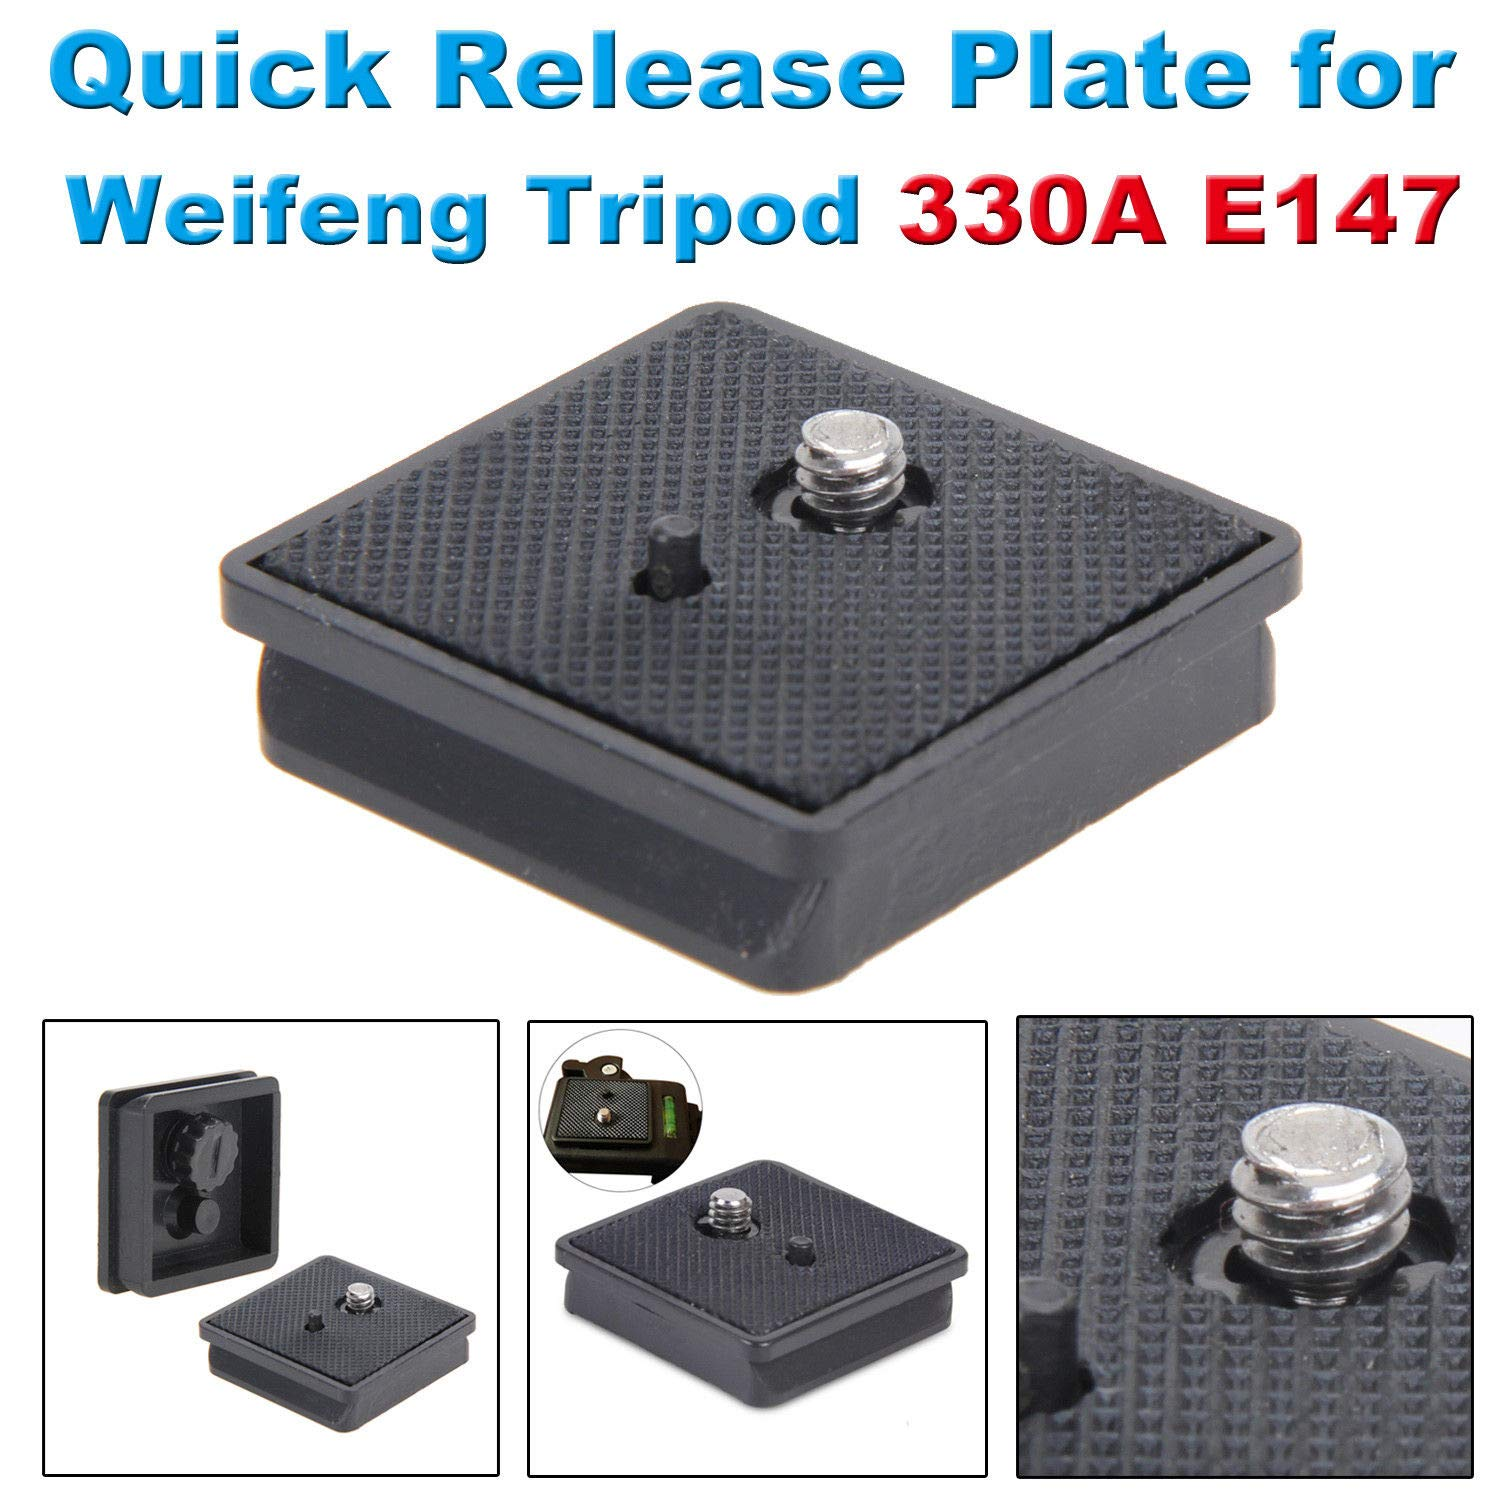 Professional Quick Release QR Plate for Weifeng Tripod 330A E147 40x42mm Black